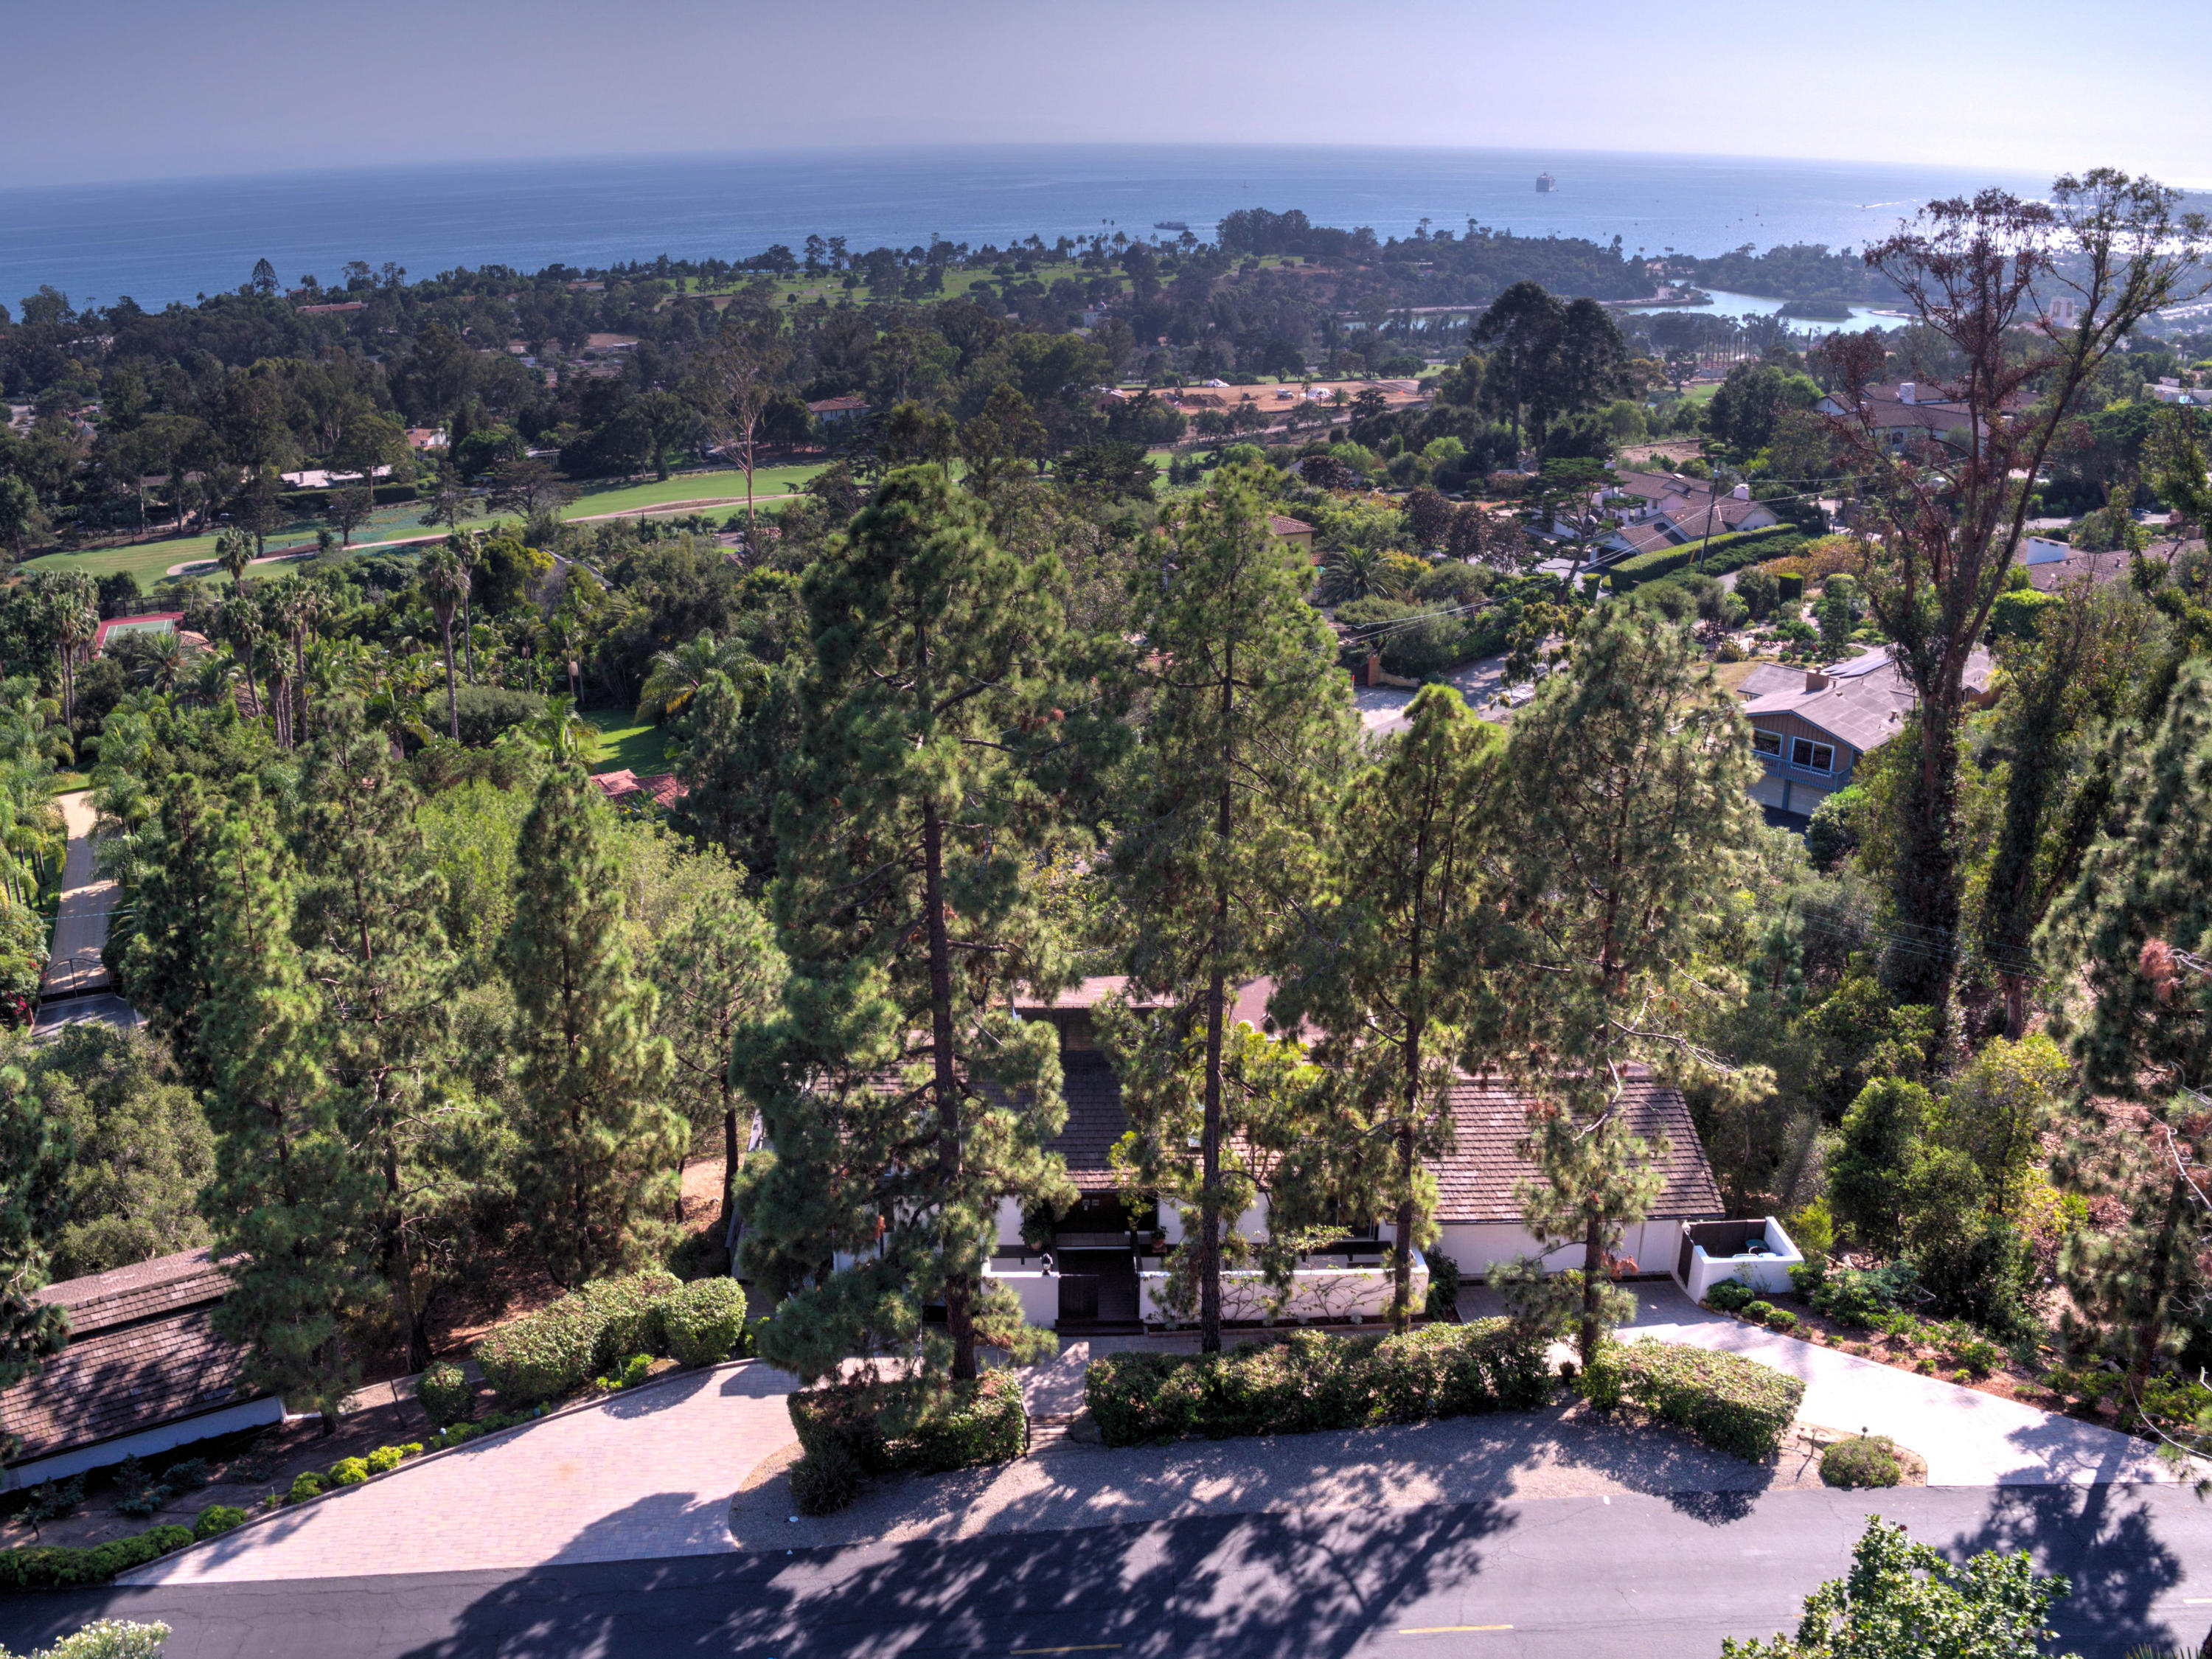 Property photo for 1143 Glenview Rd Santa Barbara, California 93108 - 17-2849